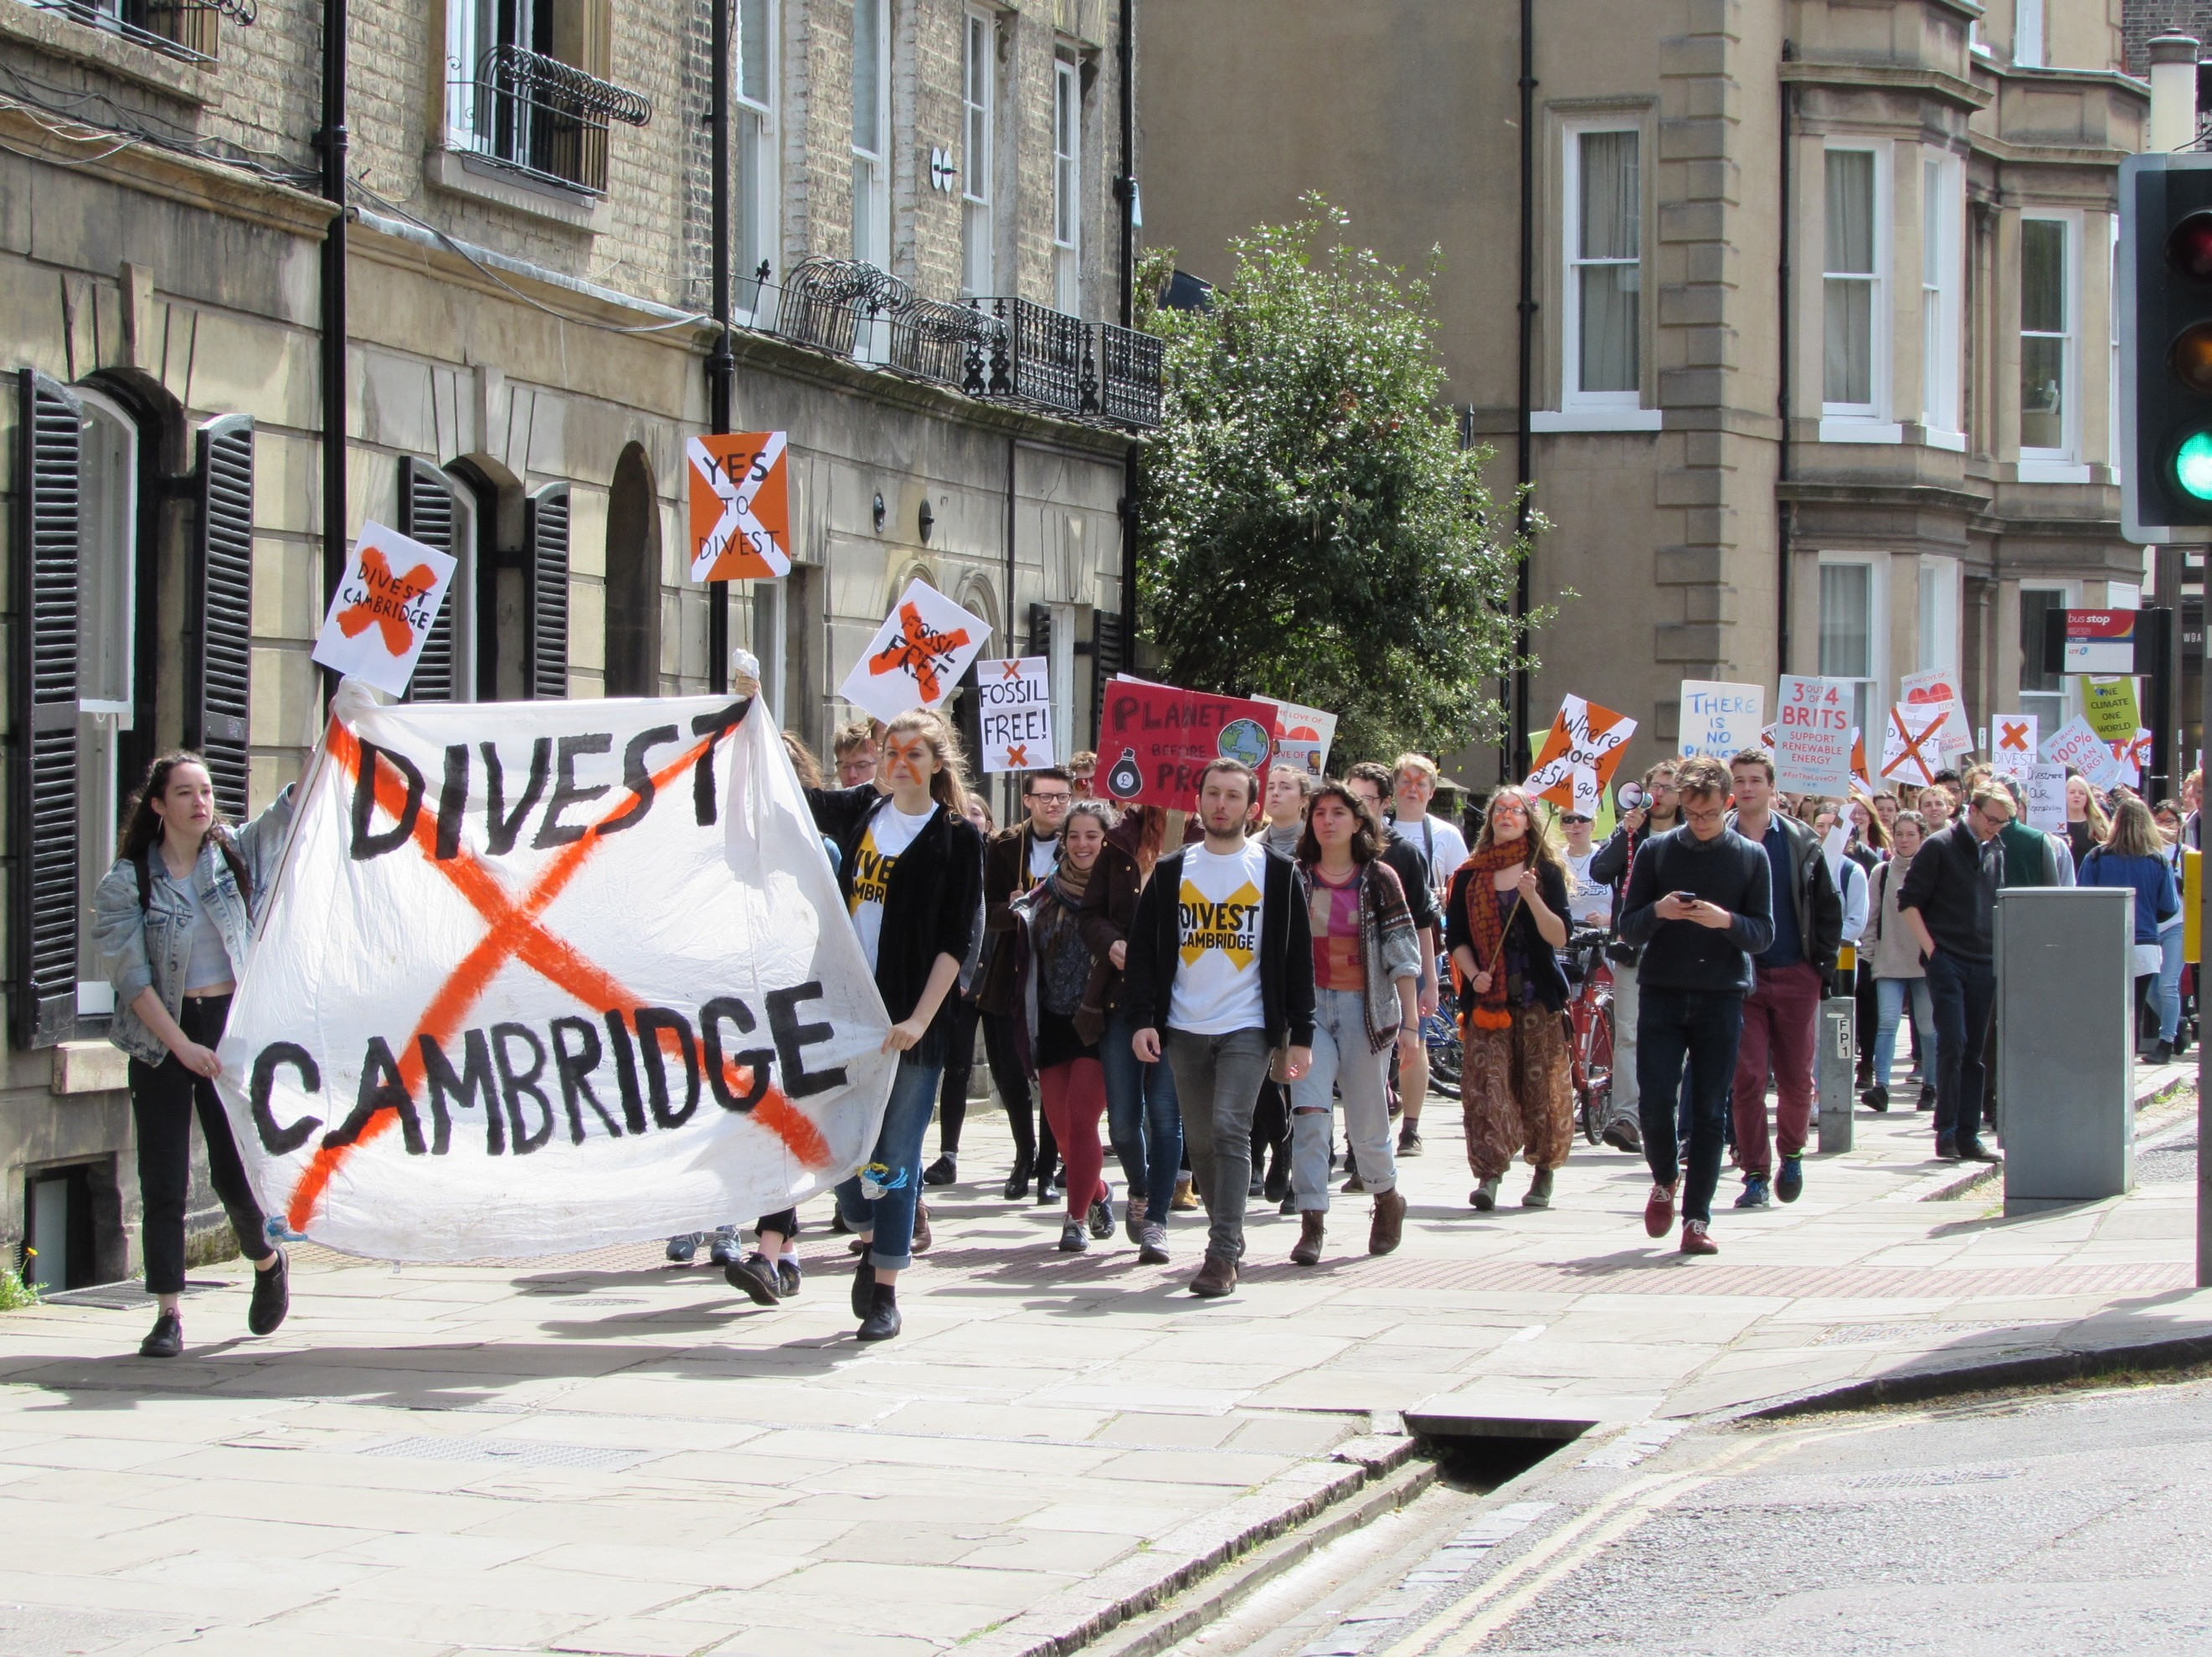 DIVEST CAMBRIDGE(1)